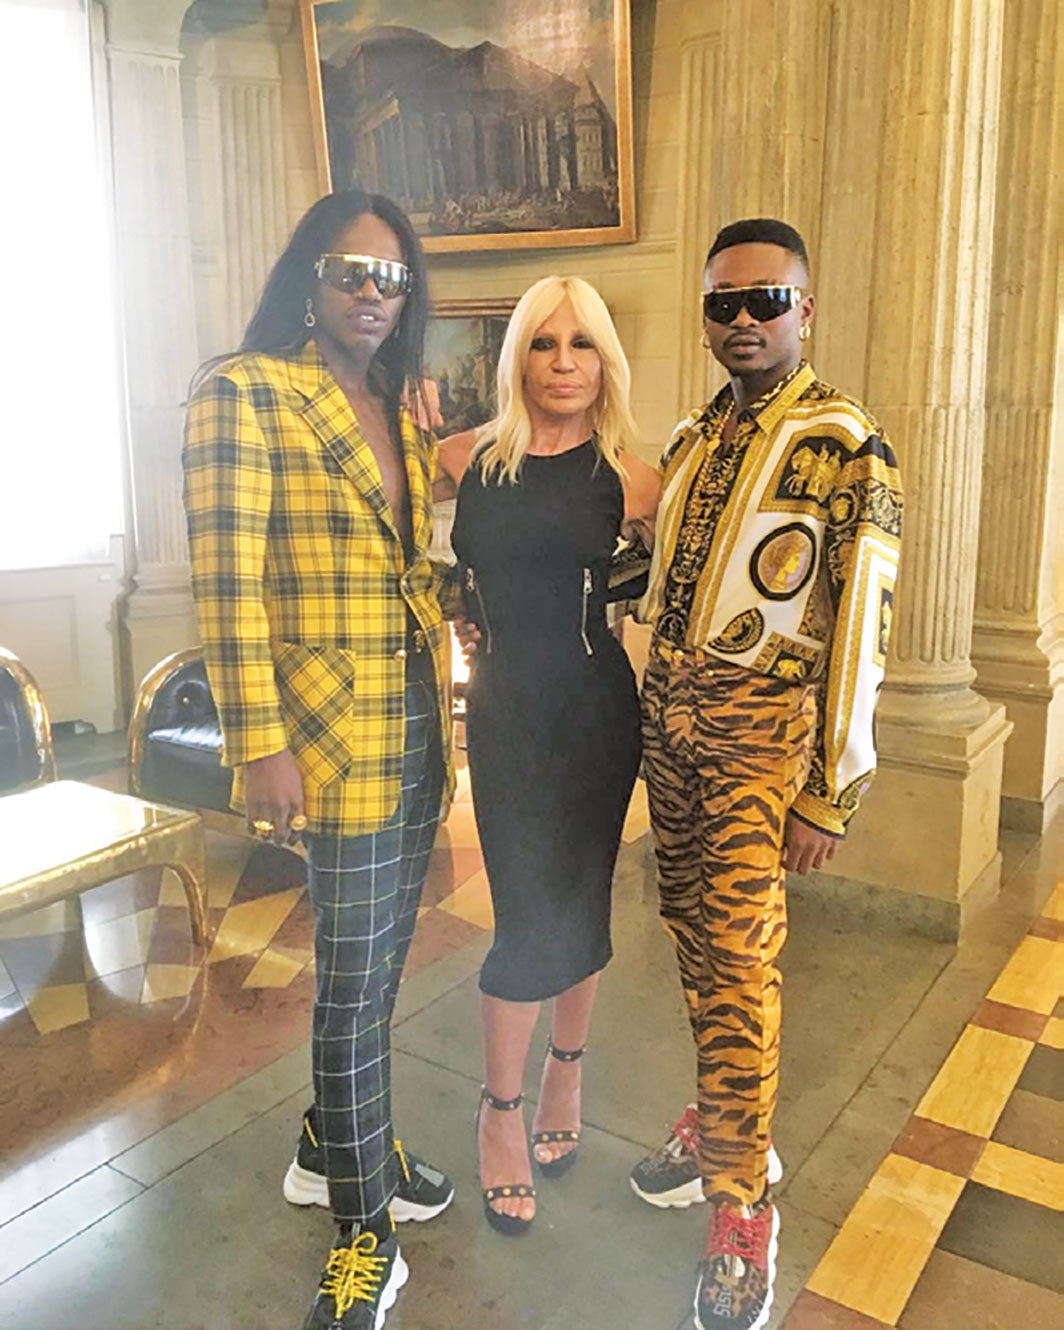 *FAKA with Donatella Versace backstage at the Versace Spring/Summer 2019 menswear show, Milan, June 16, 2018.*